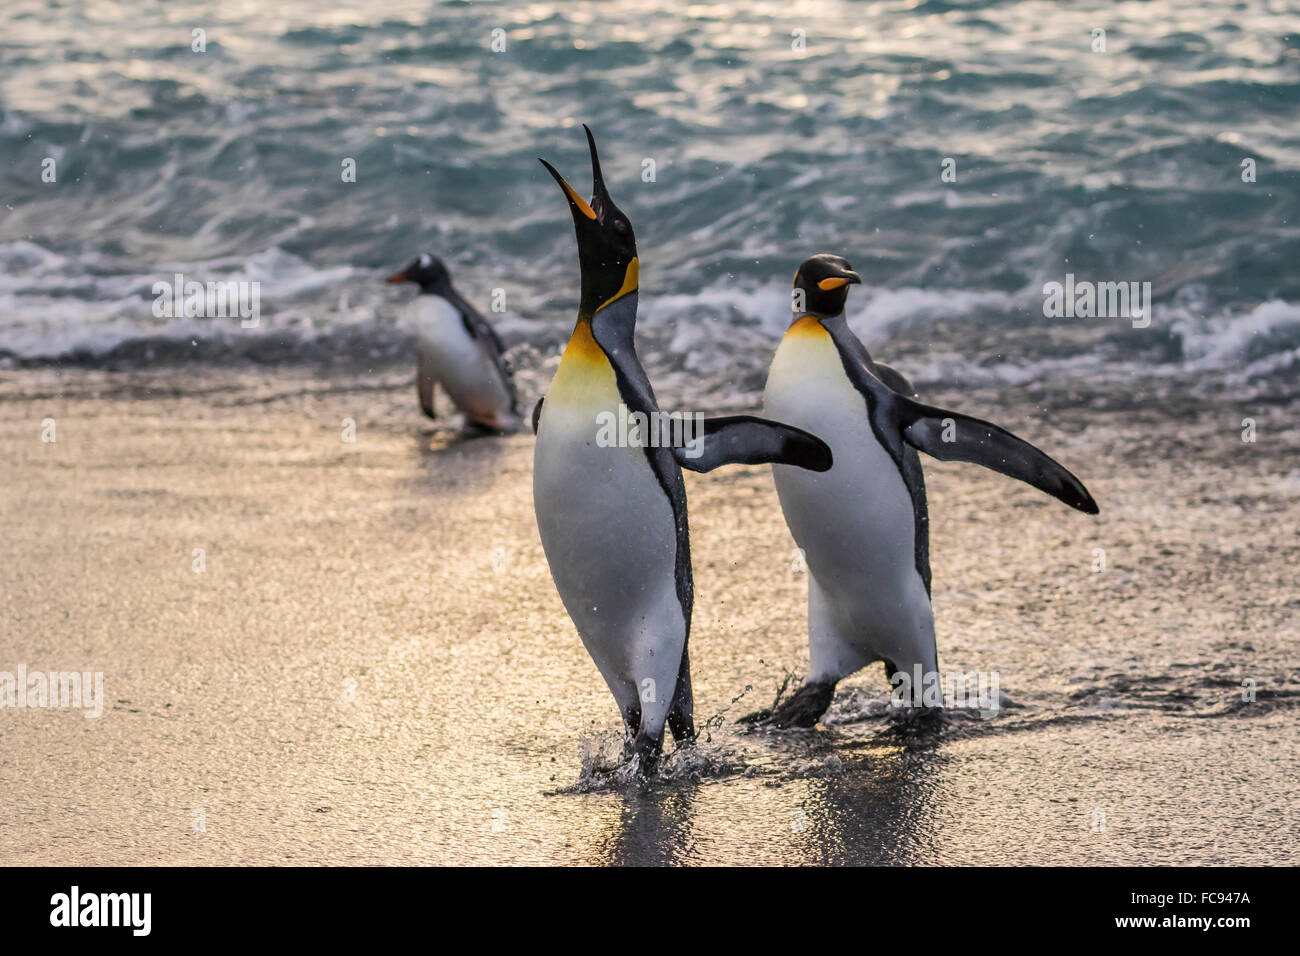 King penguins (Aptenodytes patagonicus) returning from the sea at Gold Harbour, South Georgia, Polar Regions - Stock Image